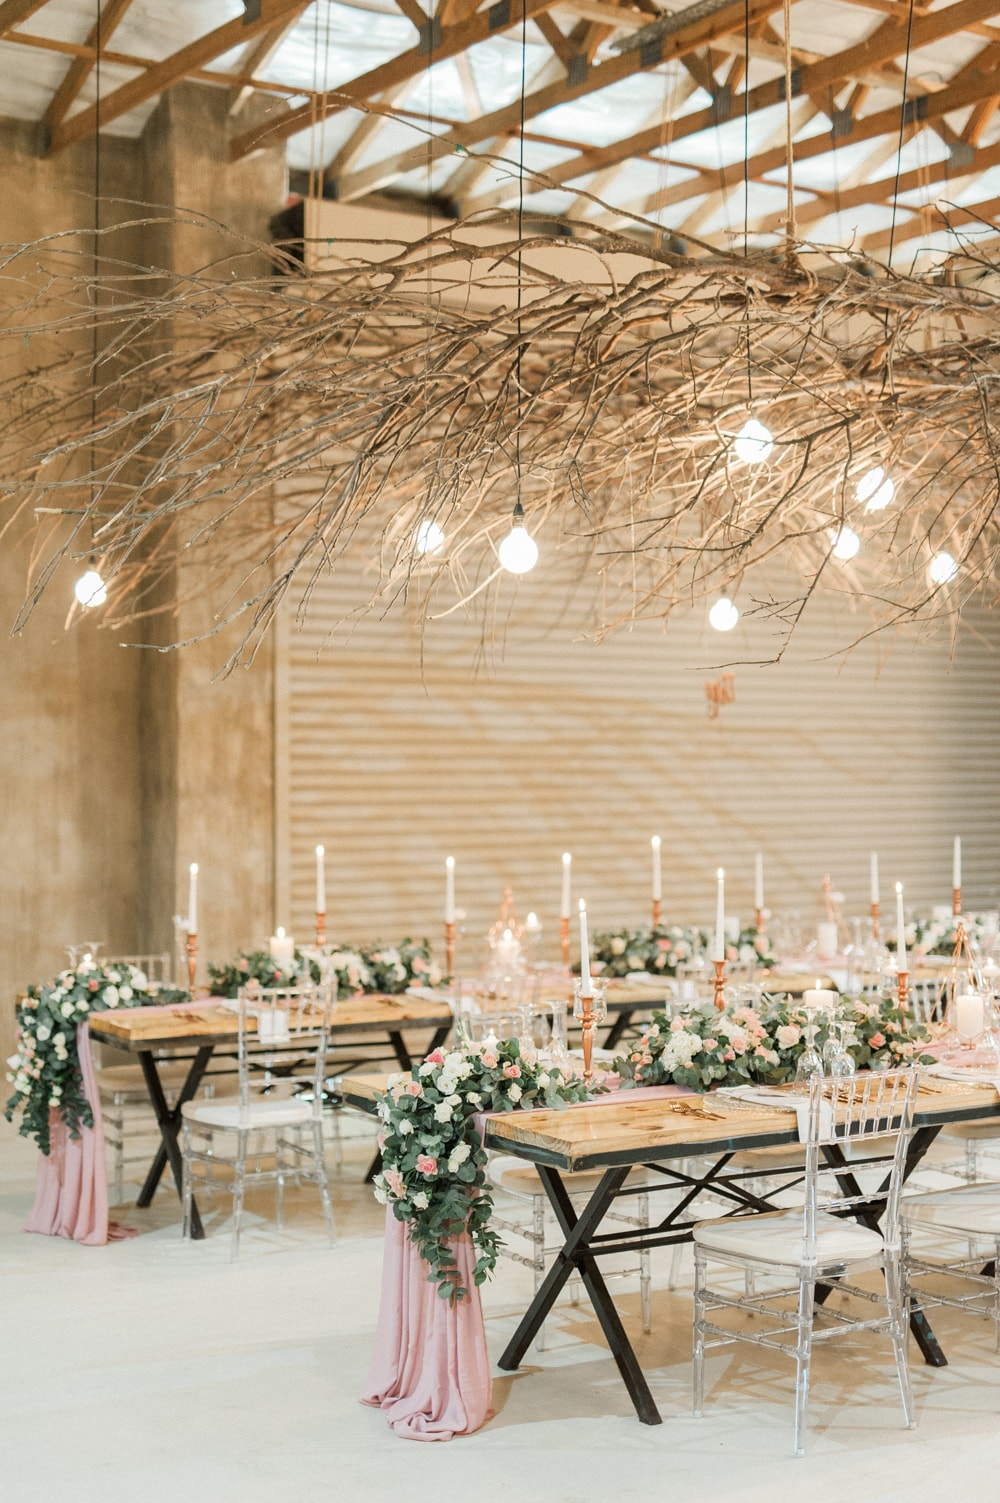 Elegant Rustic Wedding at The Venue Fontana | Image: Bright Girl Photography